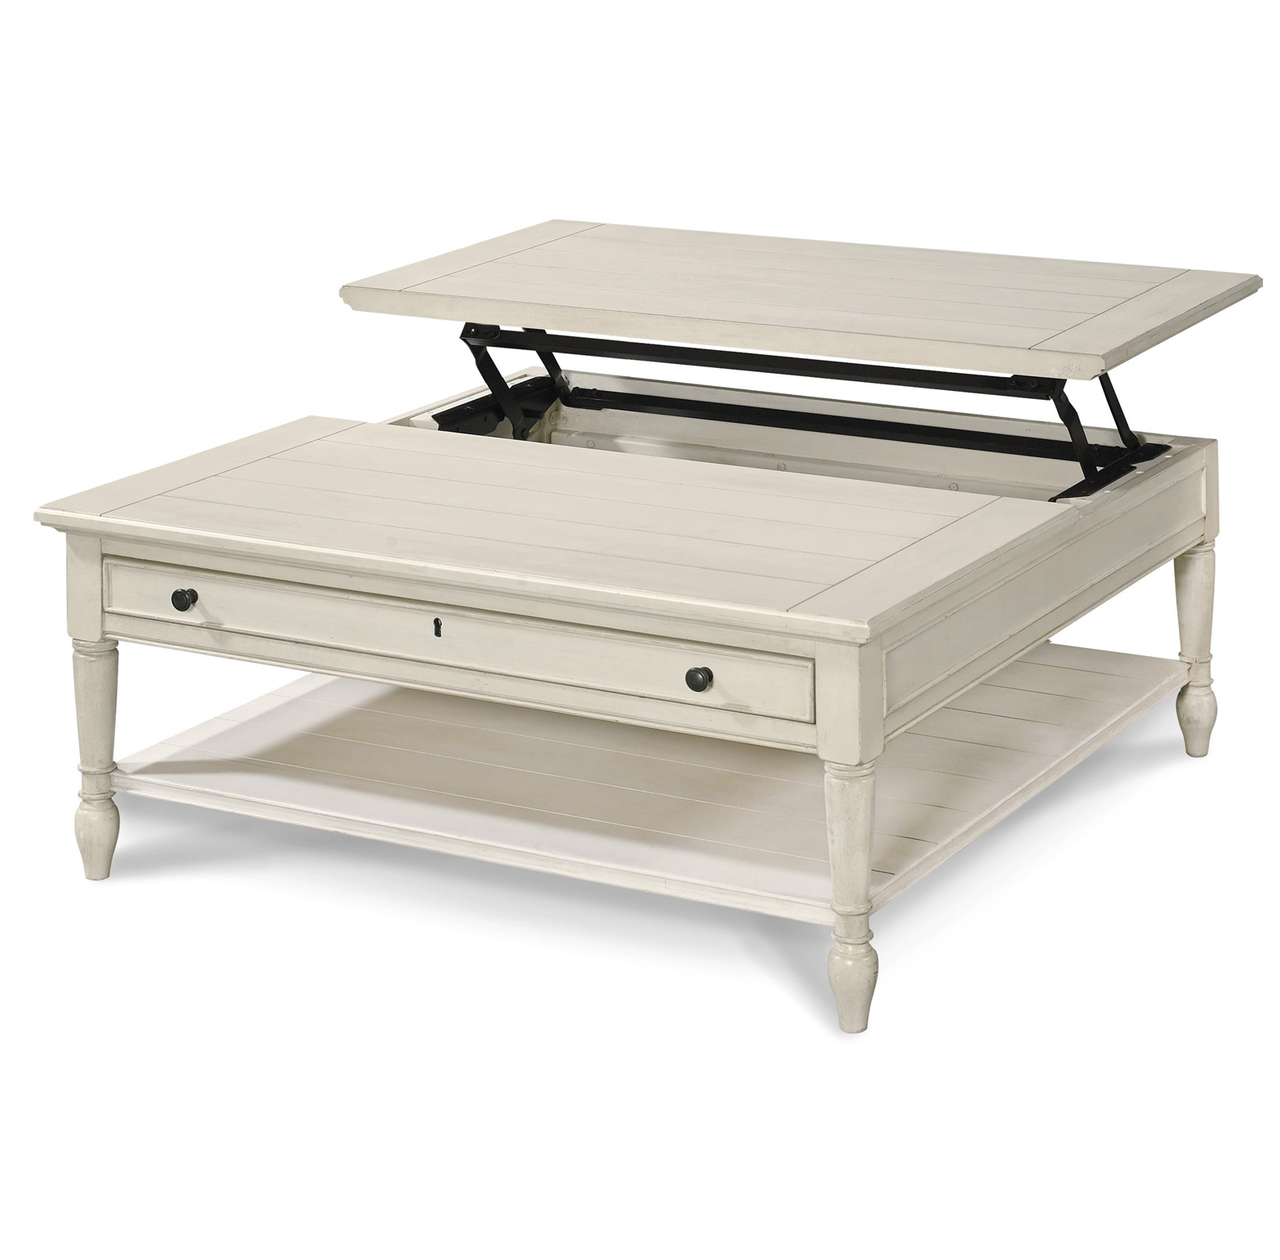 Square coffee table lift top - Country Chic White Wood Square Coffee Table With Lift Top